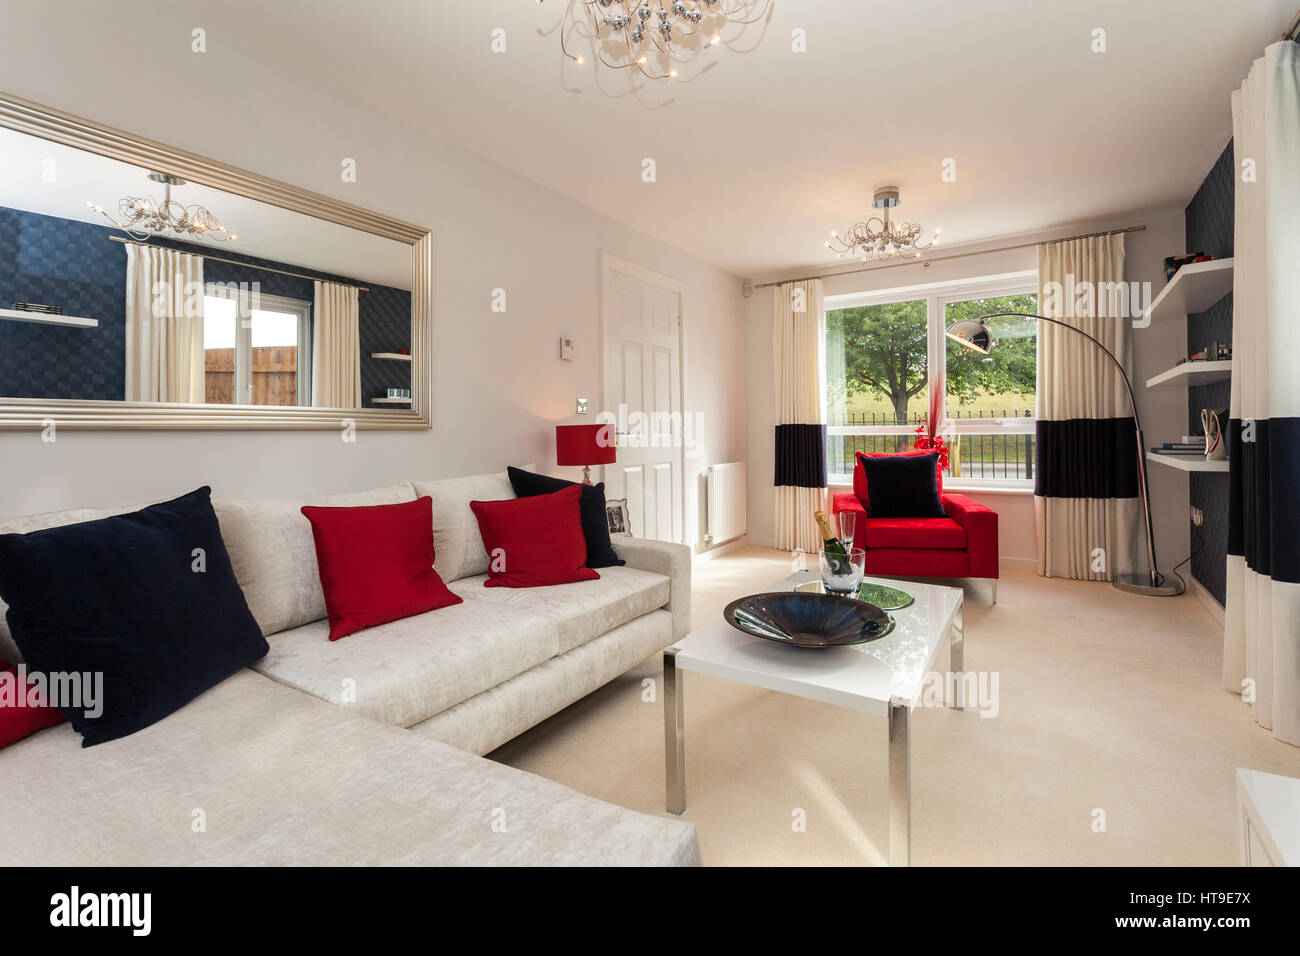 Home Interior, Modern House, New Build Lounge, Living Room, Low Furniture,  Cream, Red, Blue,